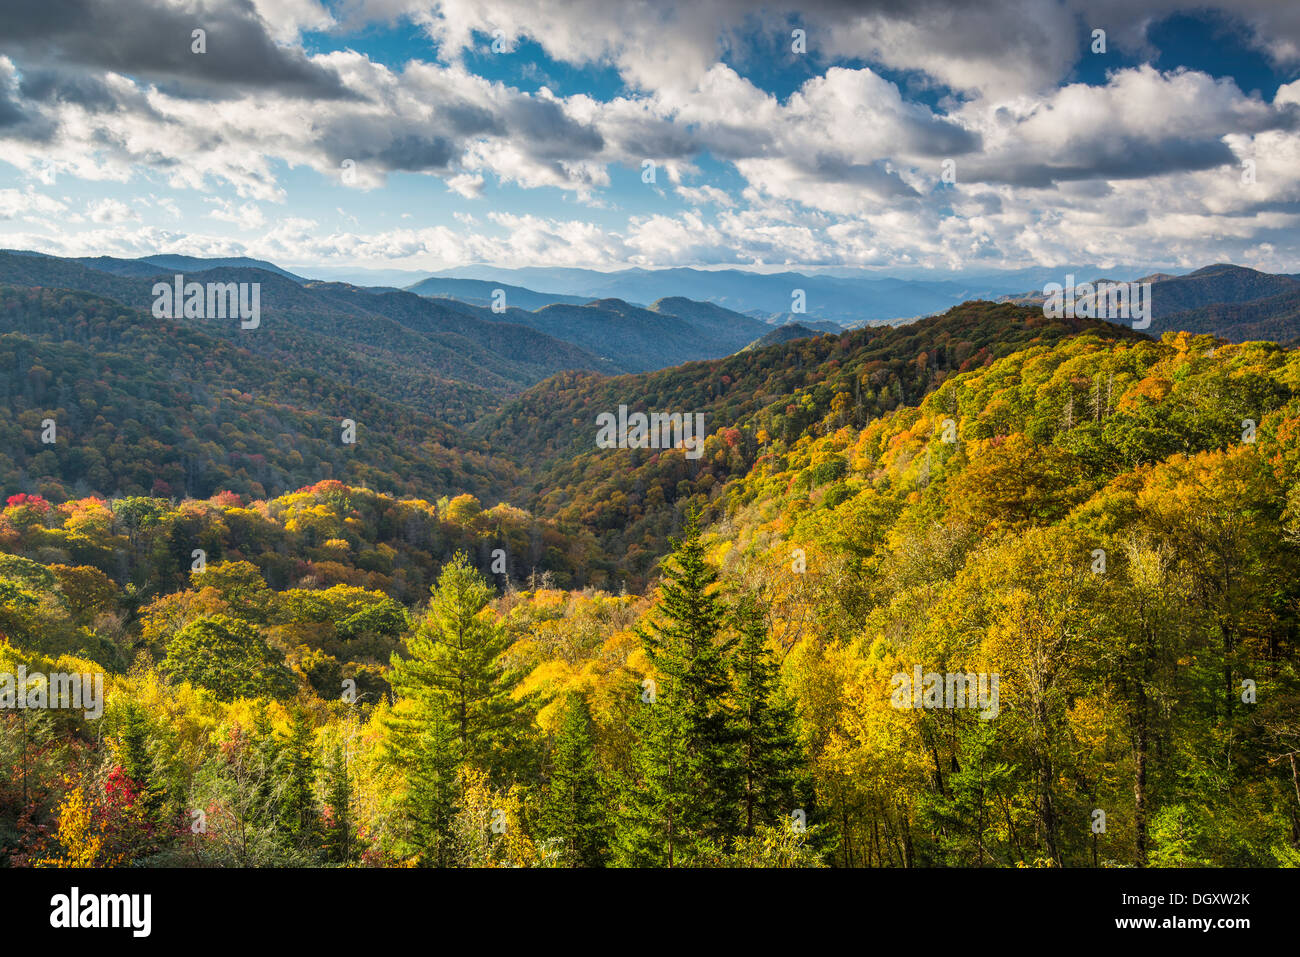 Smoky Mountains landscape at Newfound Gap in autumn. - Stock Image